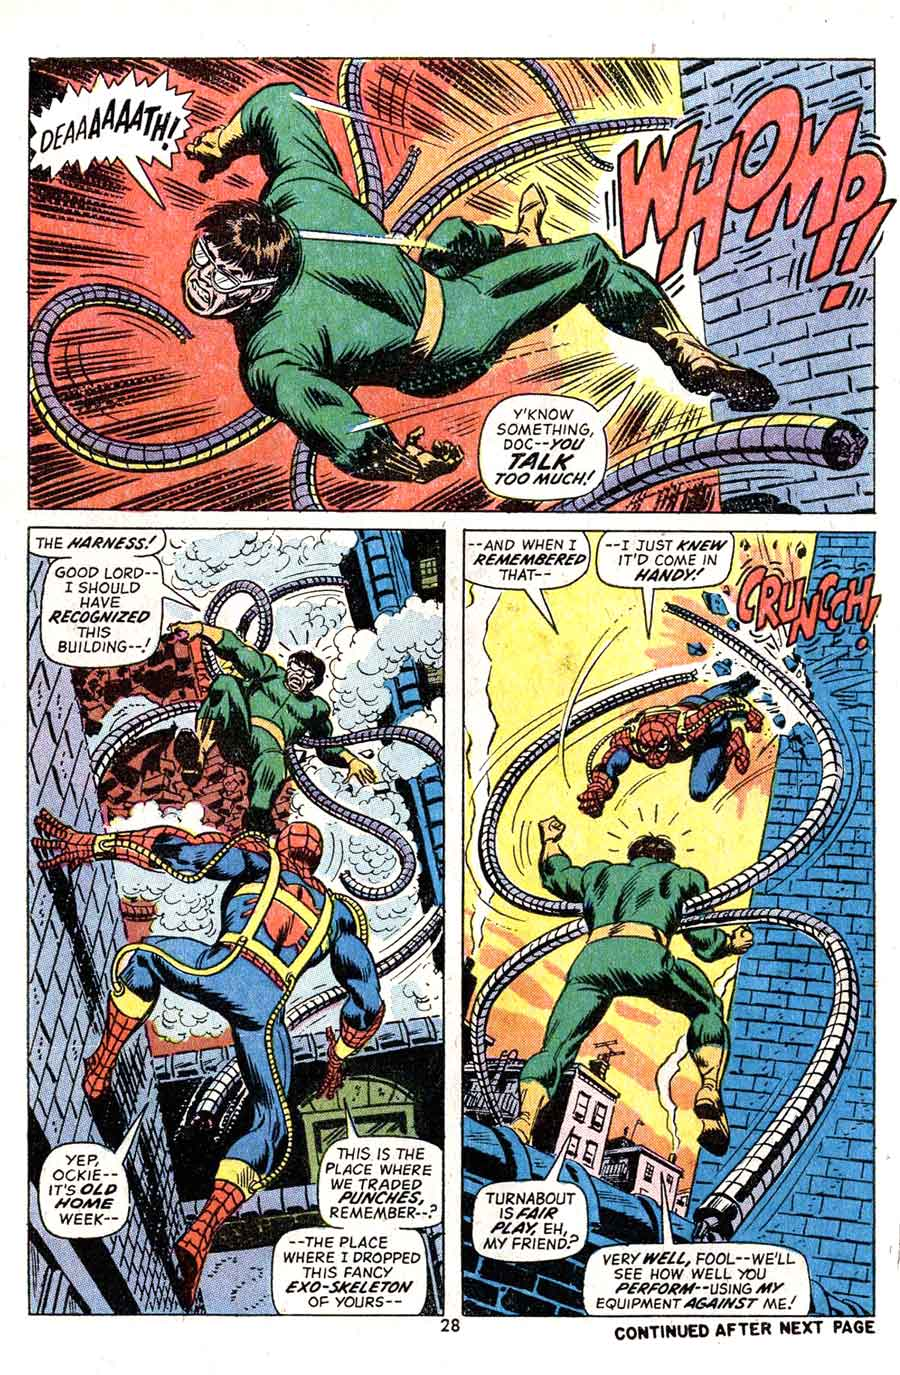 Amazing Spider-Man v1 #113 marvel comic book page art by Jim Starlin